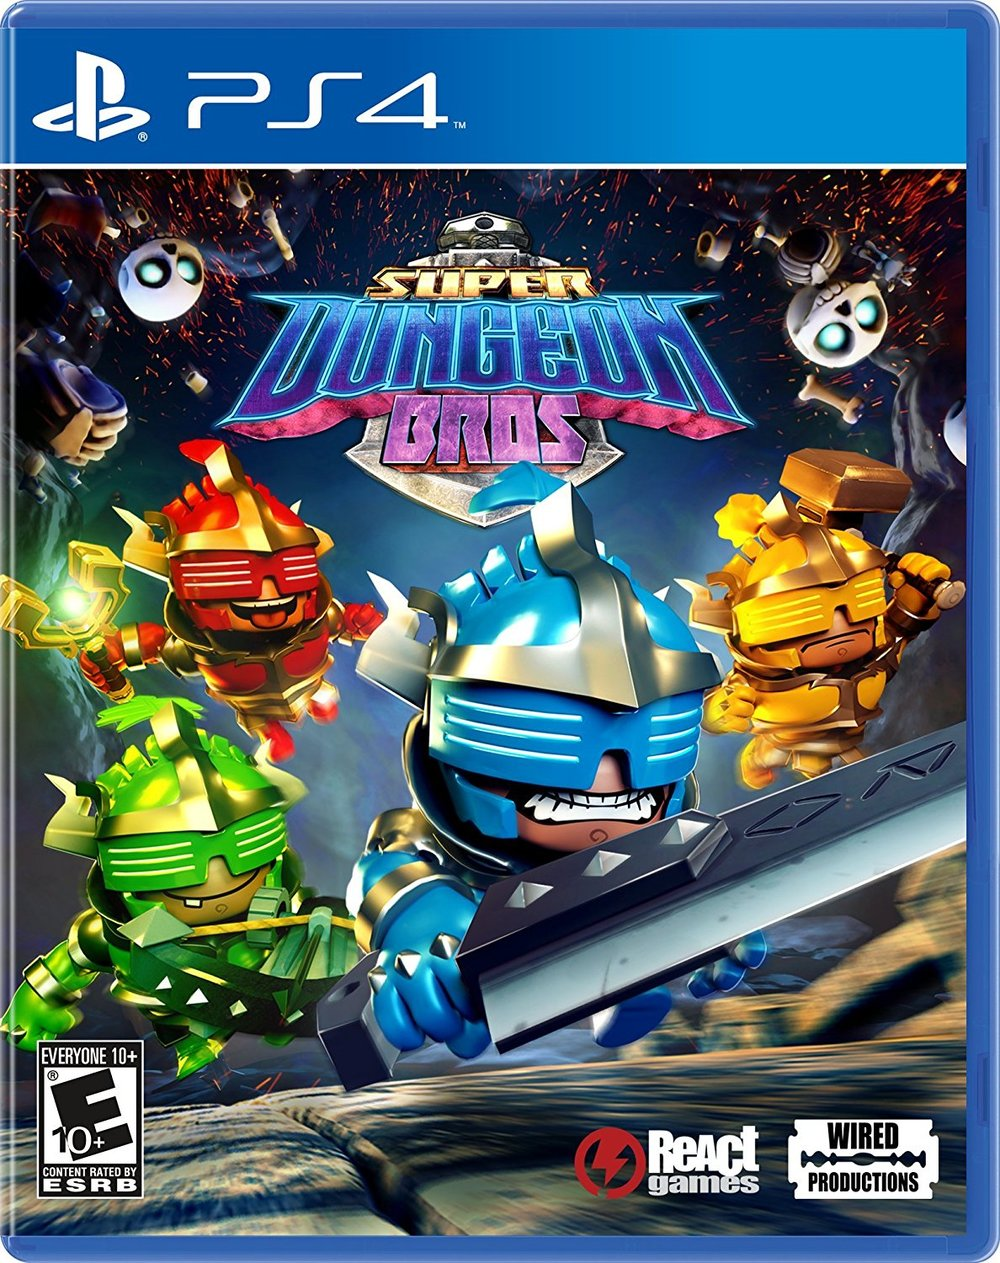 Super Dungeon Bros - PlayStation 4 - $14.44 - $5.55 off or 28%